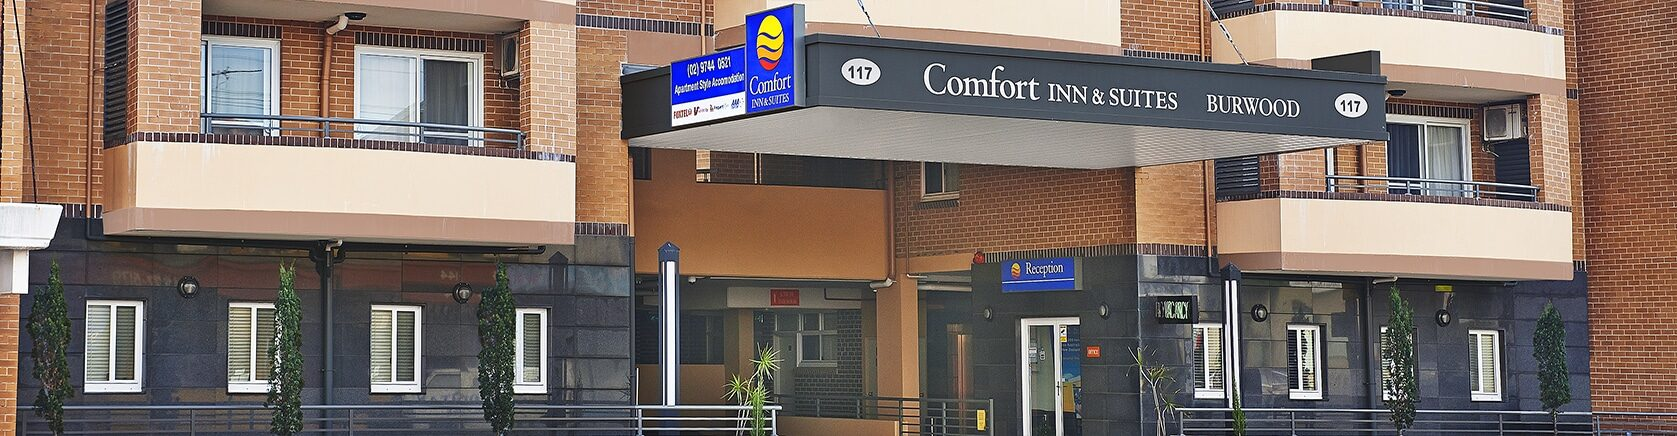 Comfort Inn and Suites Burwood - Entrance